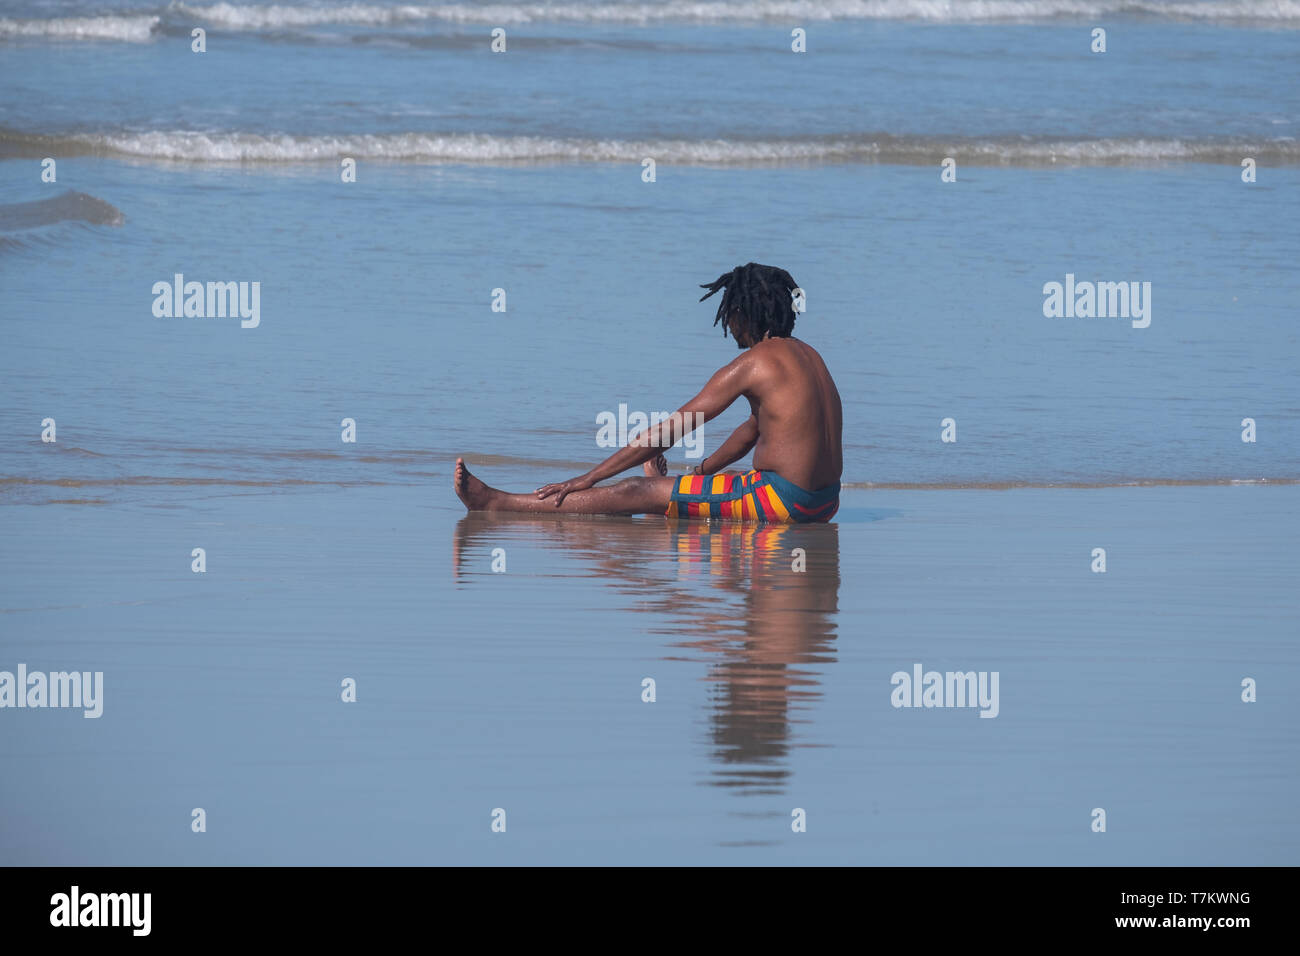 Young boy in colourful striped shorts plays in the waves at Port St Johns, Transkei, South Africa. The sea at Port St Johns is shark infested. - Stock Image